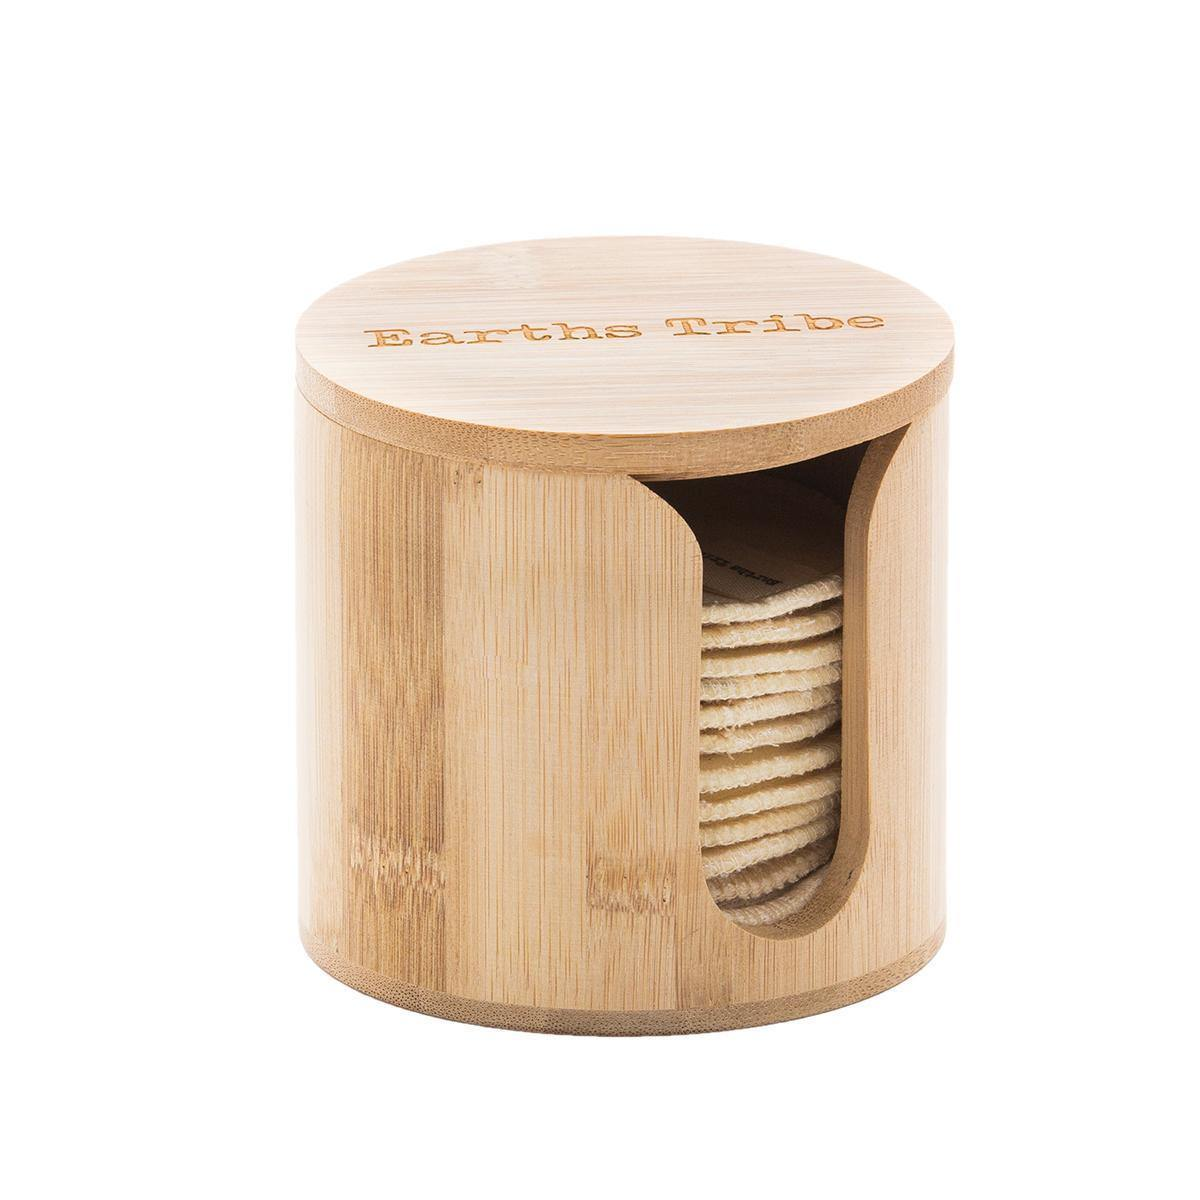 Earths Tribe | Bamboo Makeup Round Holder - Earths Tribe